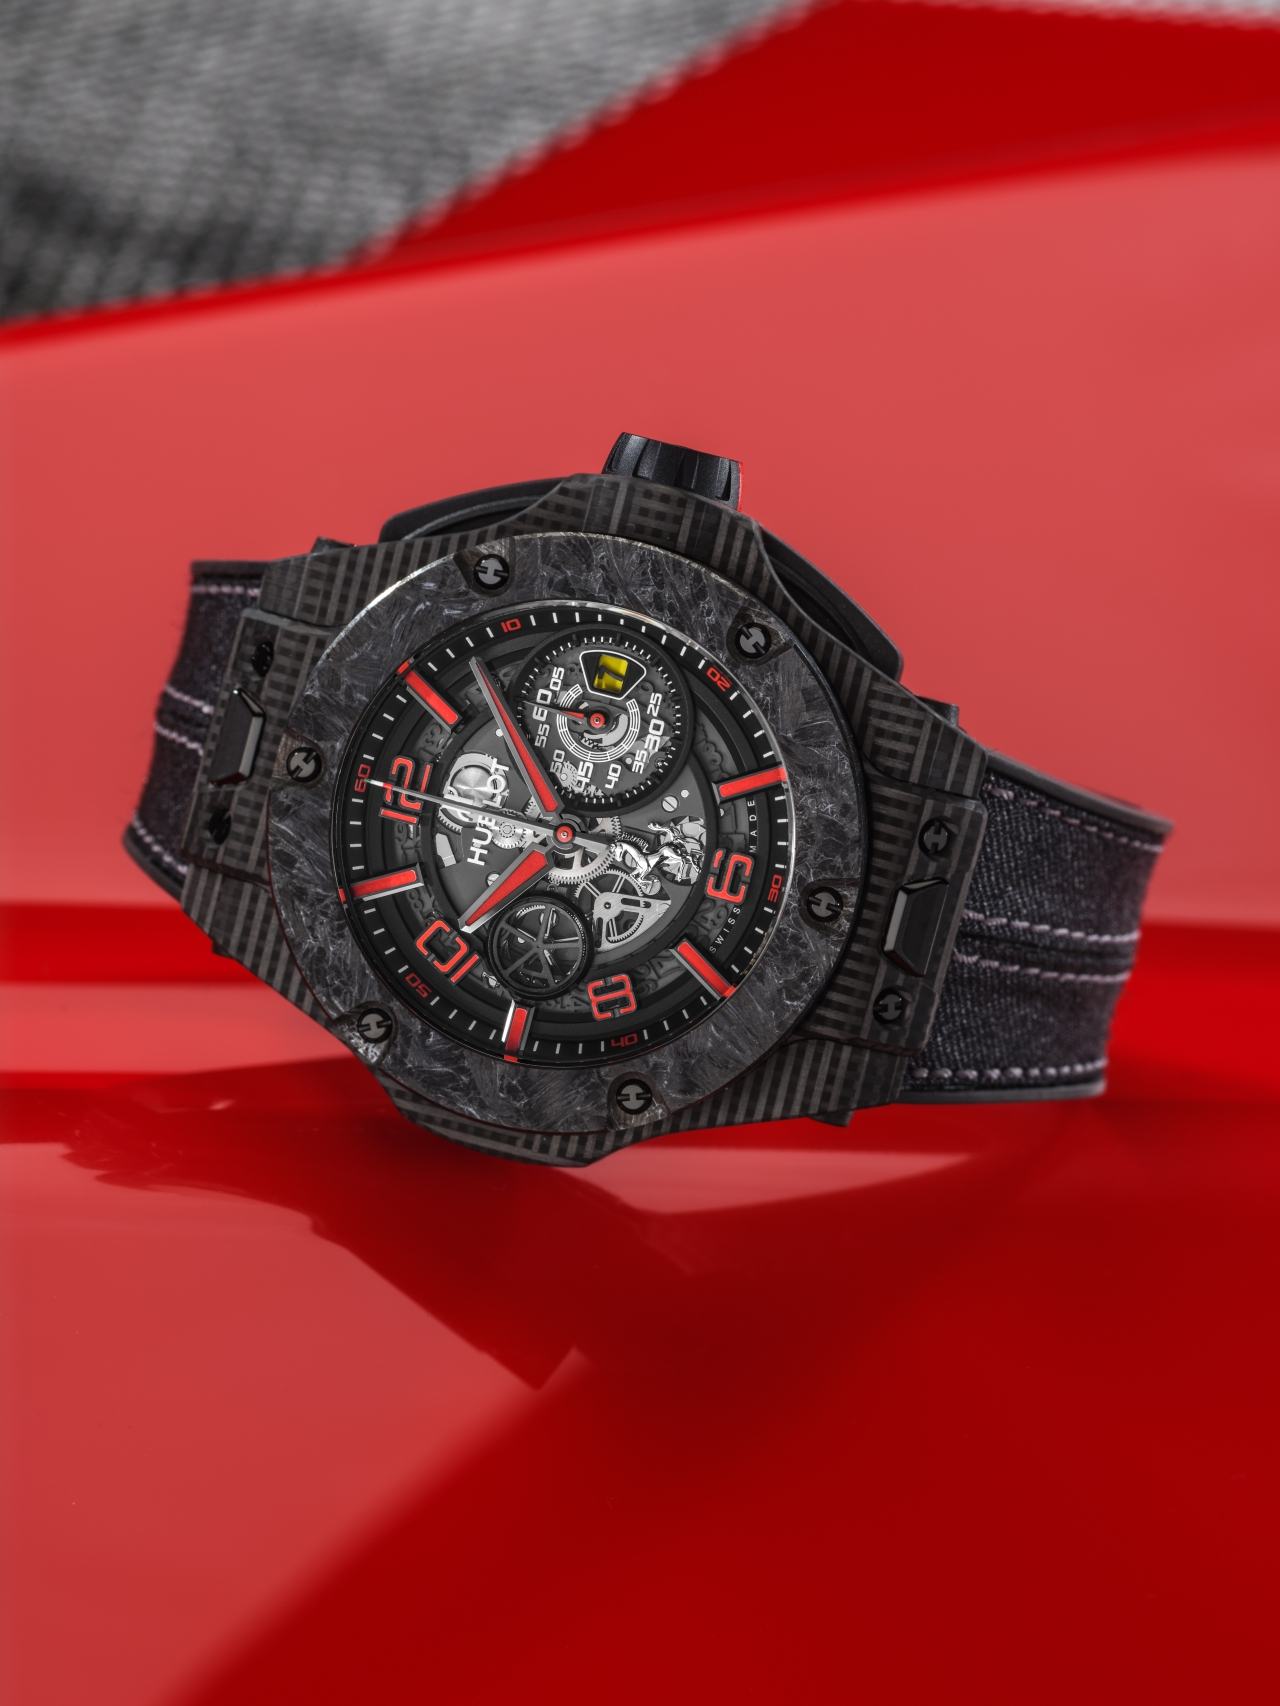 Hublot Big Bang Scuderia Ferrari 90th Anniversary 3D Carbon